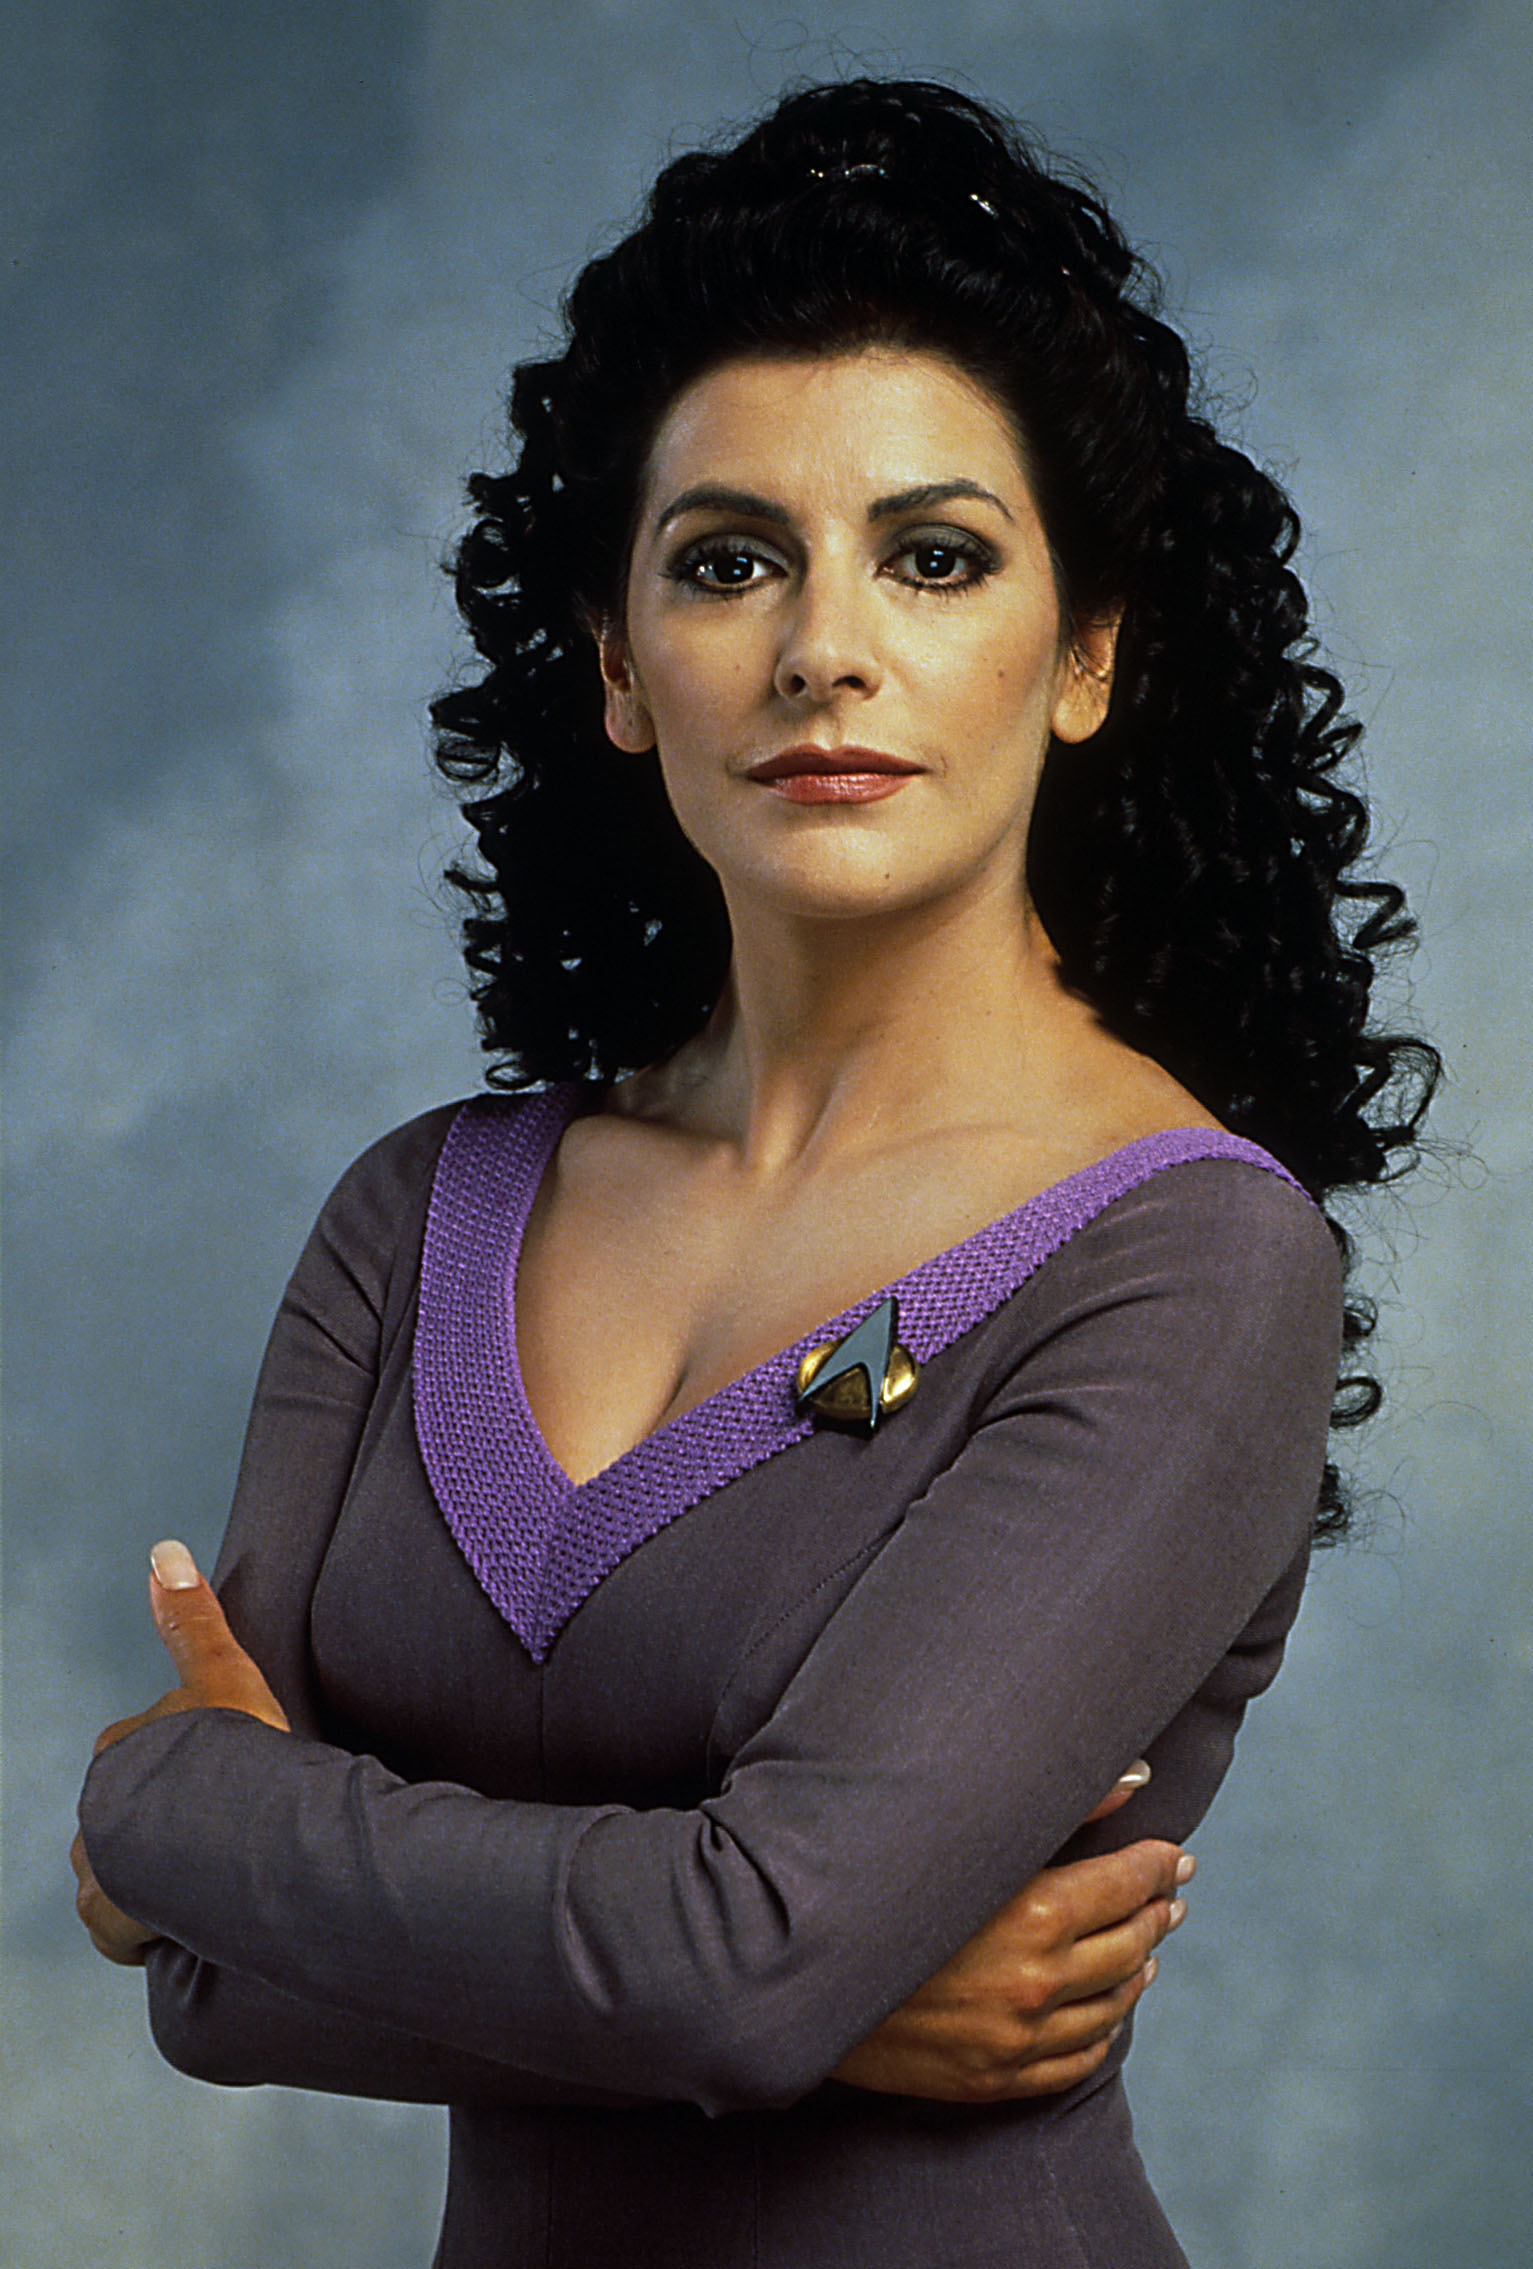 Counselor-Deanna-Troi-counselor-deanna-troi-24182625-1533-2269.jpg